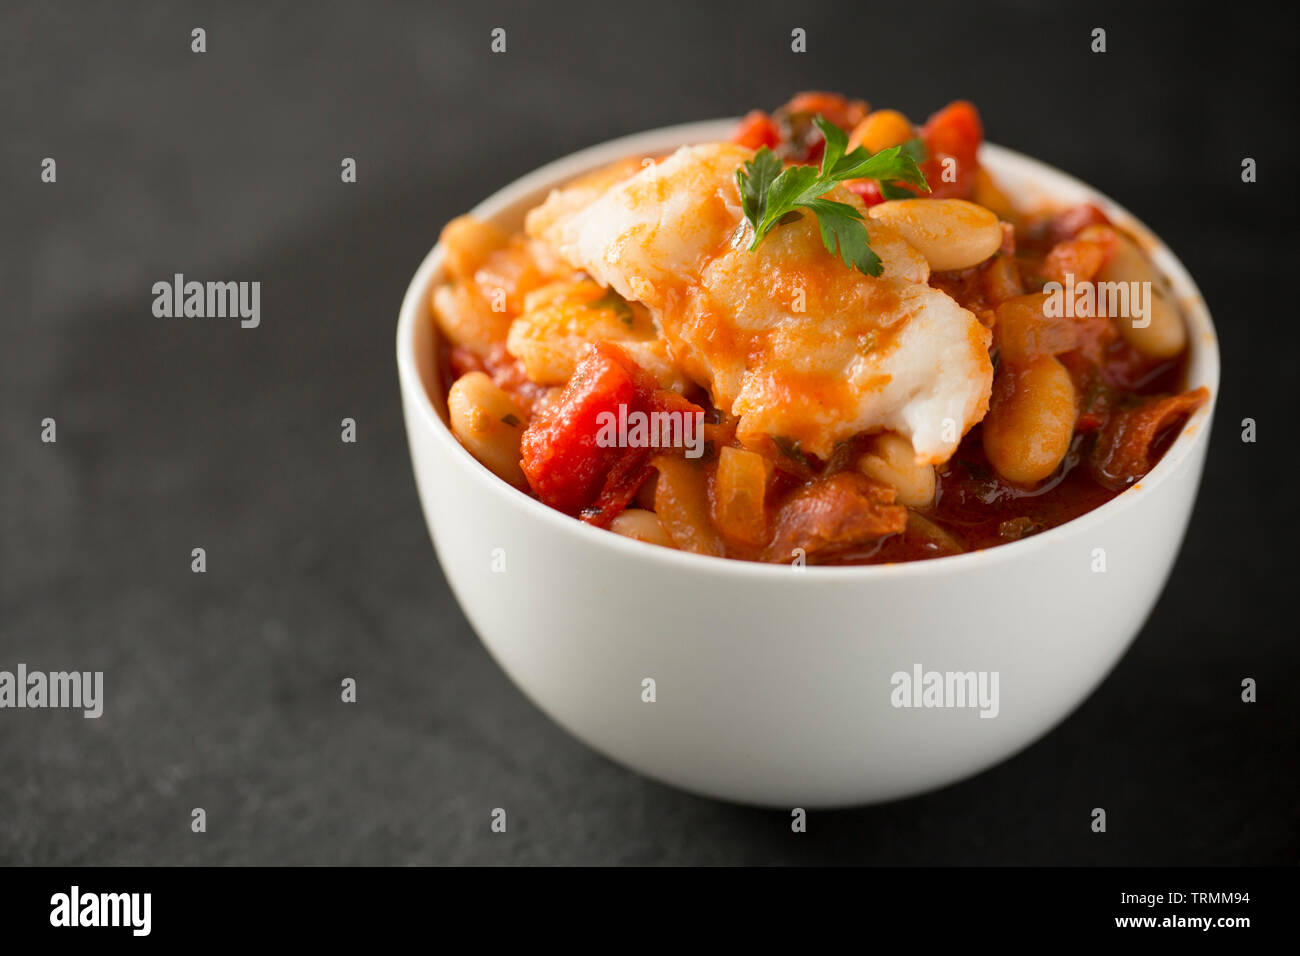 A pollack and chorizo sausage fish stew made with tomatoes, roasted red bell peppers, tinned tomatoes, chopped onions, cannellini beans and parsley. T - Stock Image